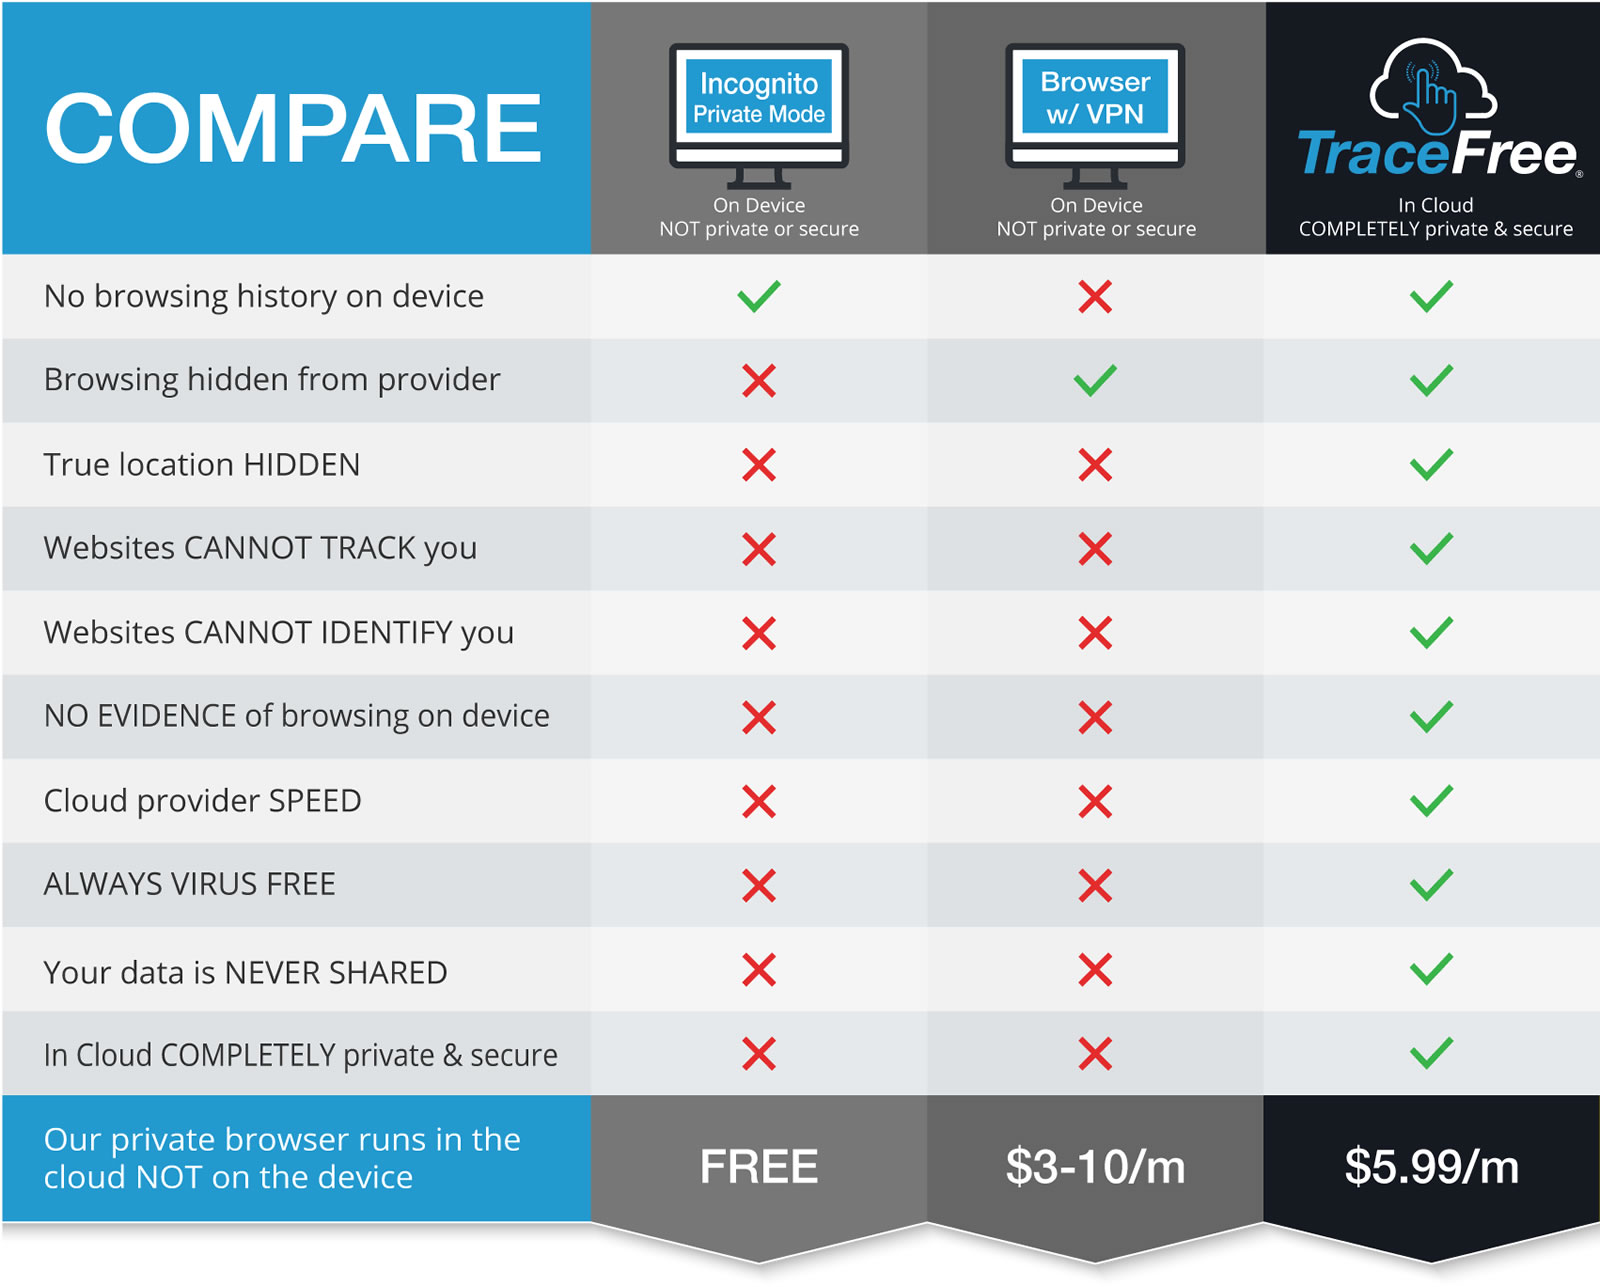 trace-free-private-surfing-vpn-best-price-compare-service-providers